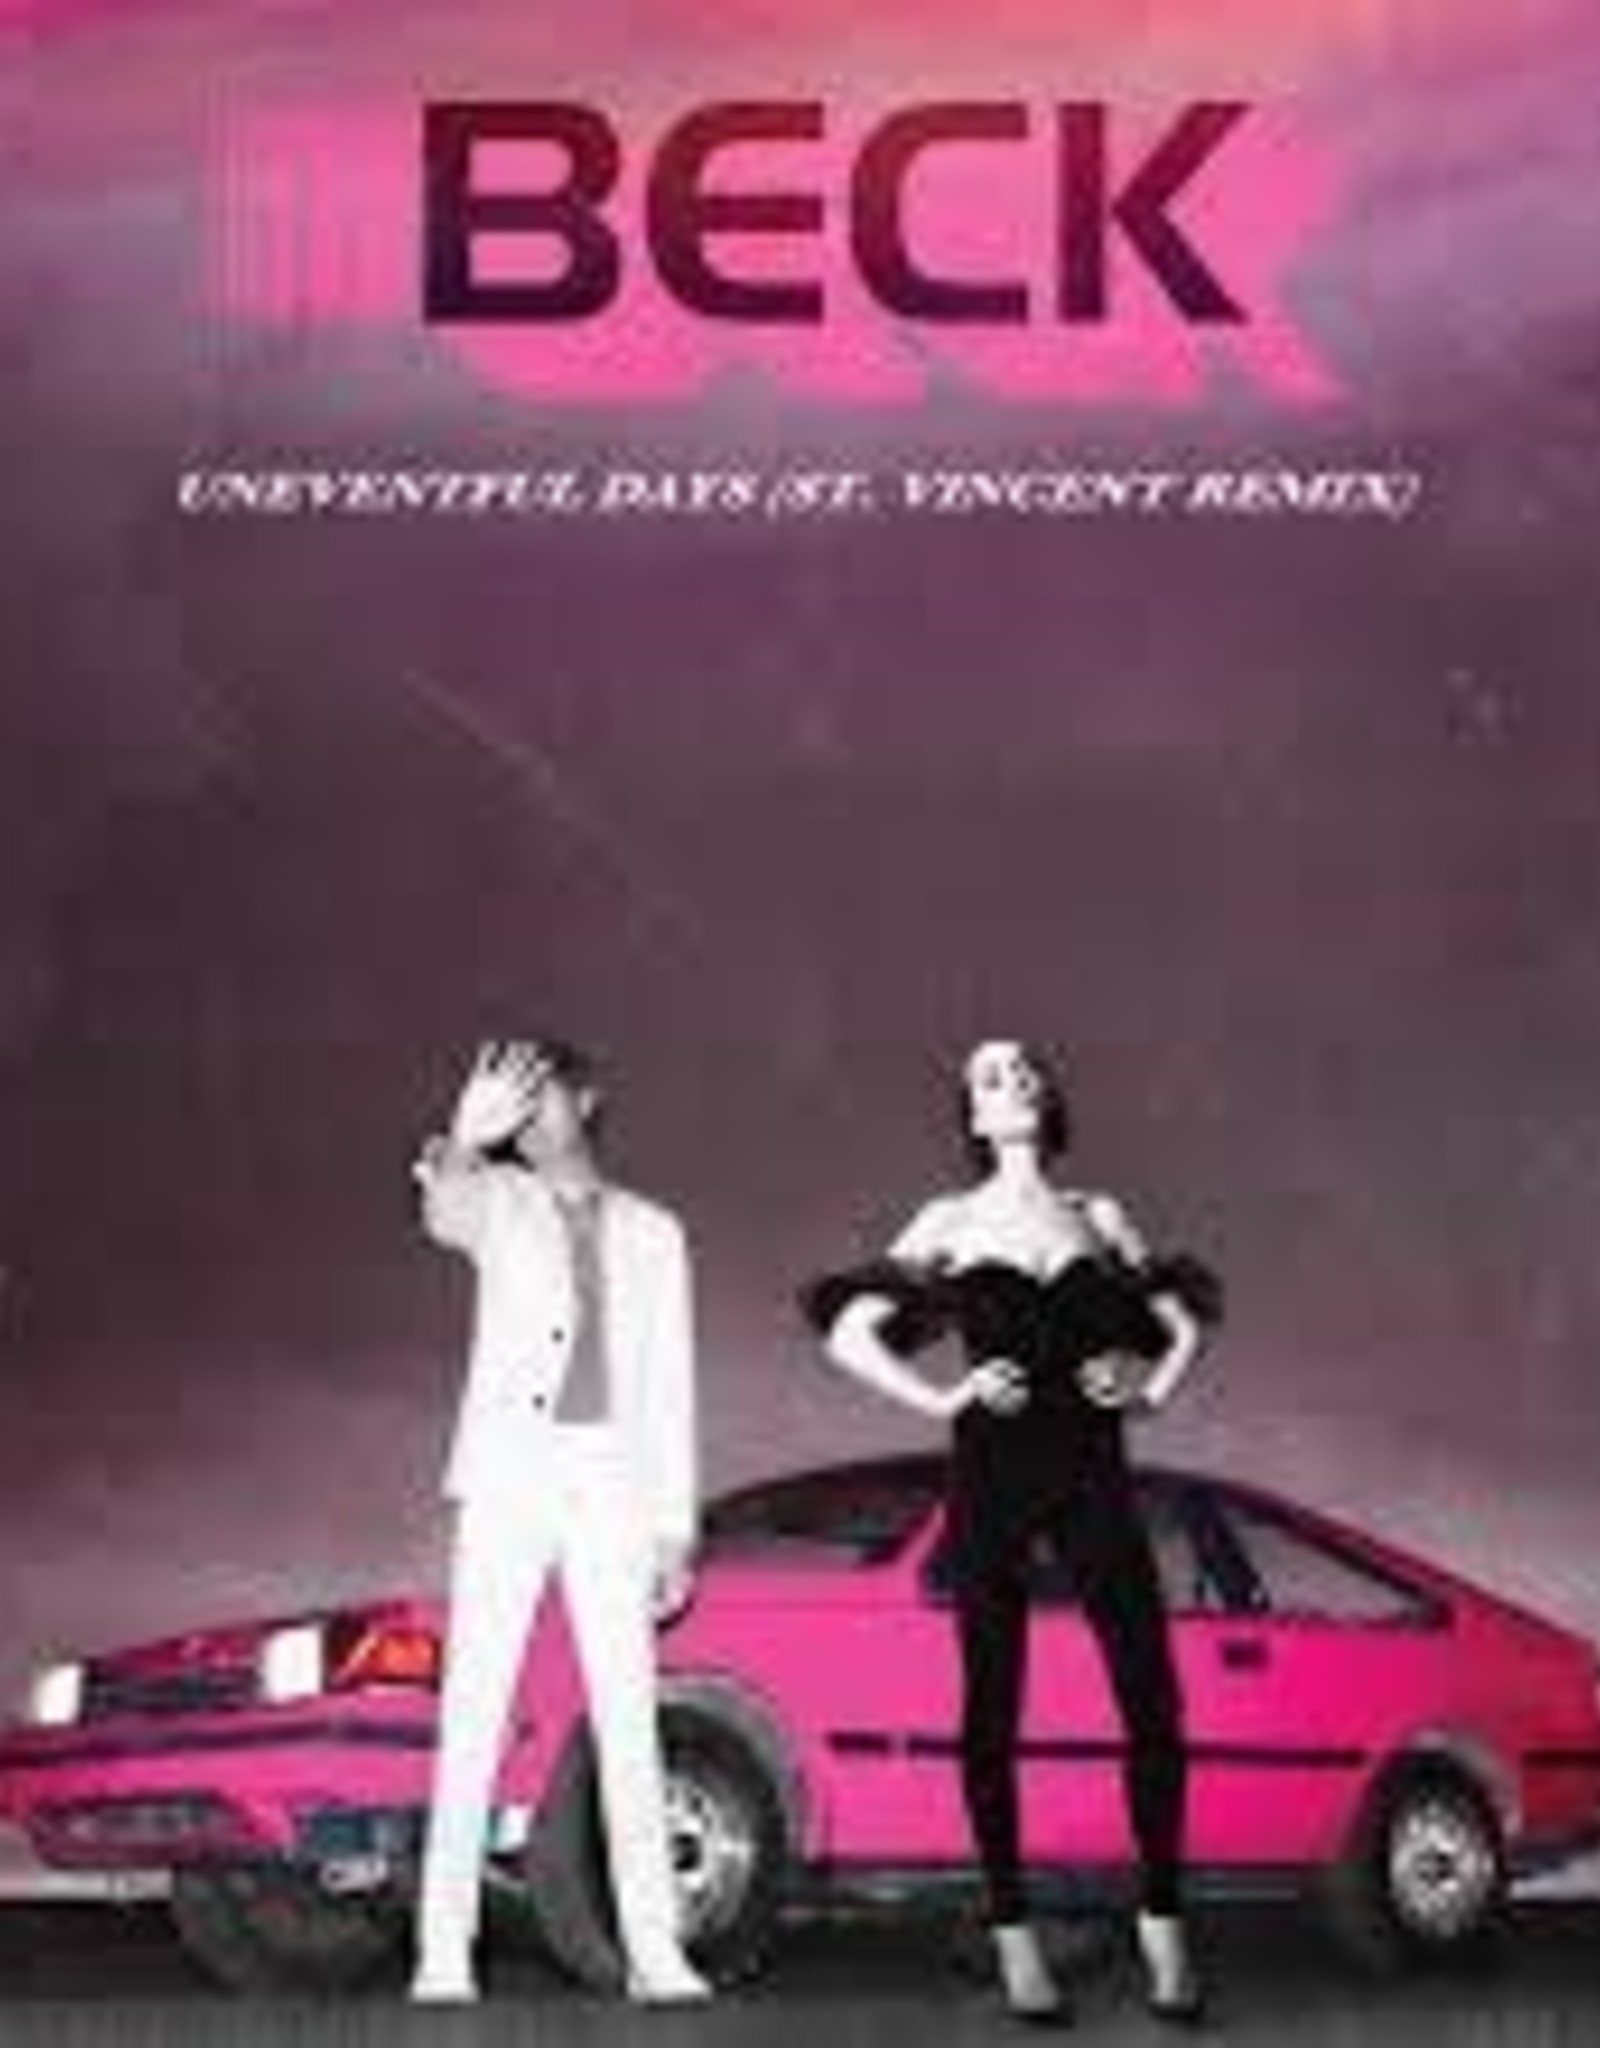 Beck - No Distraction / Uneventful Days (Remixes)  Single